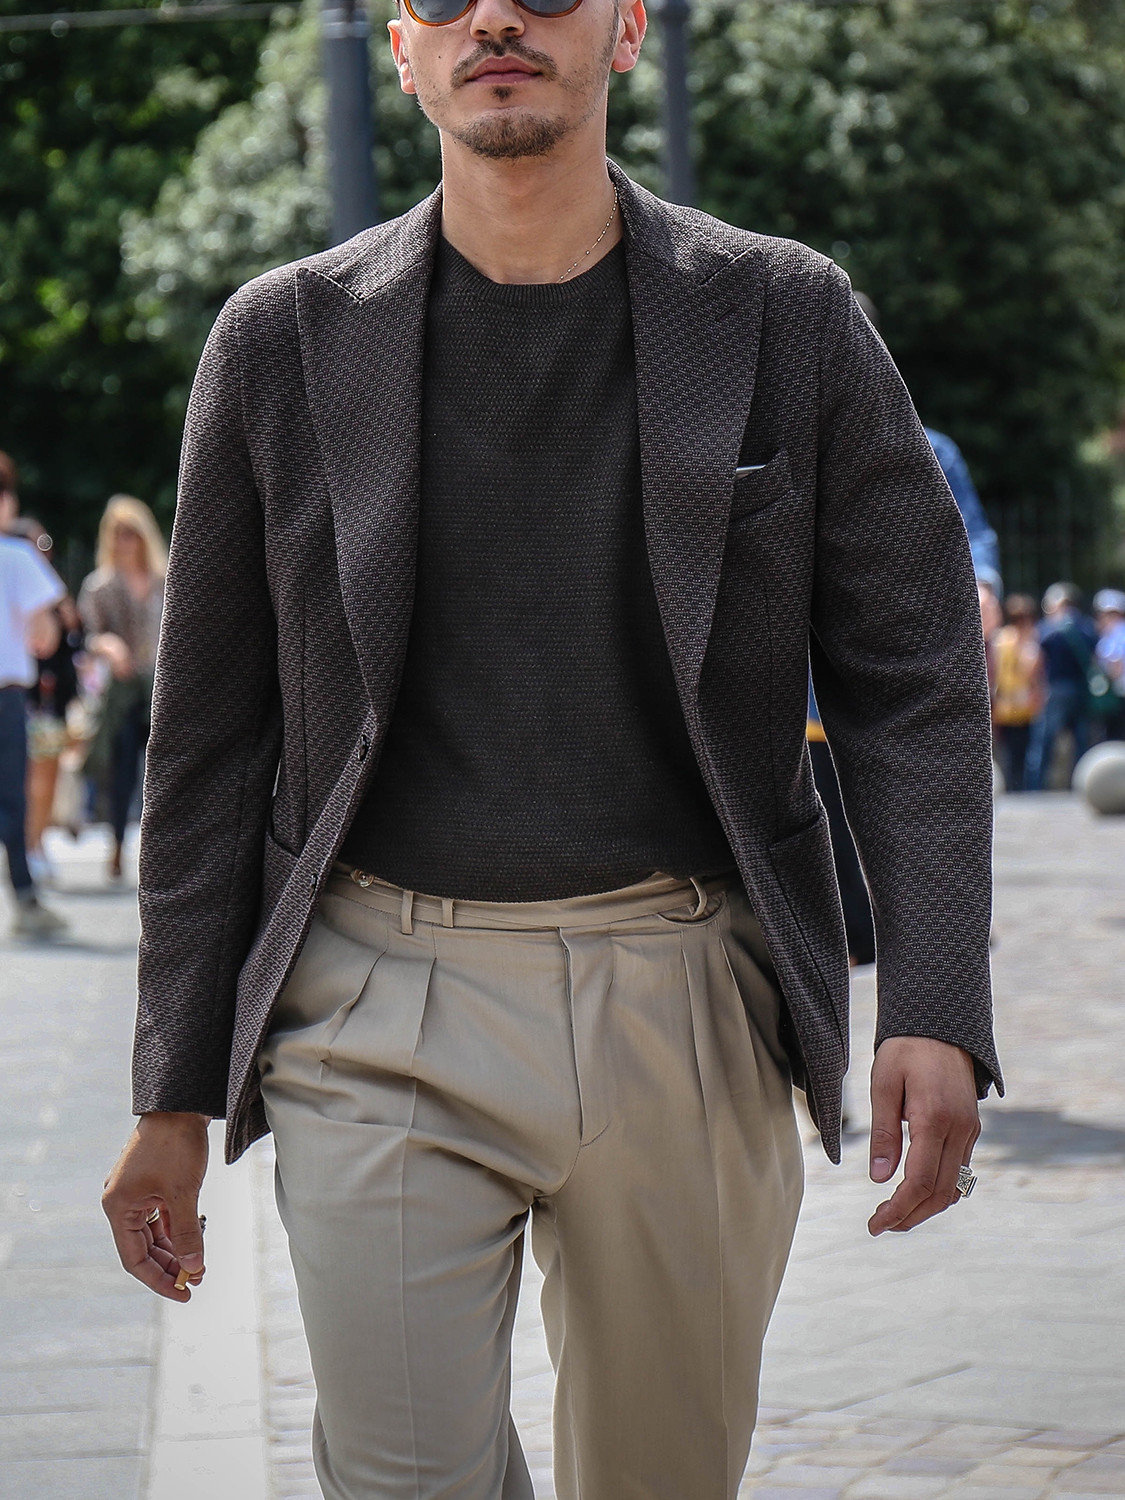 Men's outfit idea for 2021 with grey plain crew neck knitted jumper, stone chinos. Suitable for spring, summer and autumn.